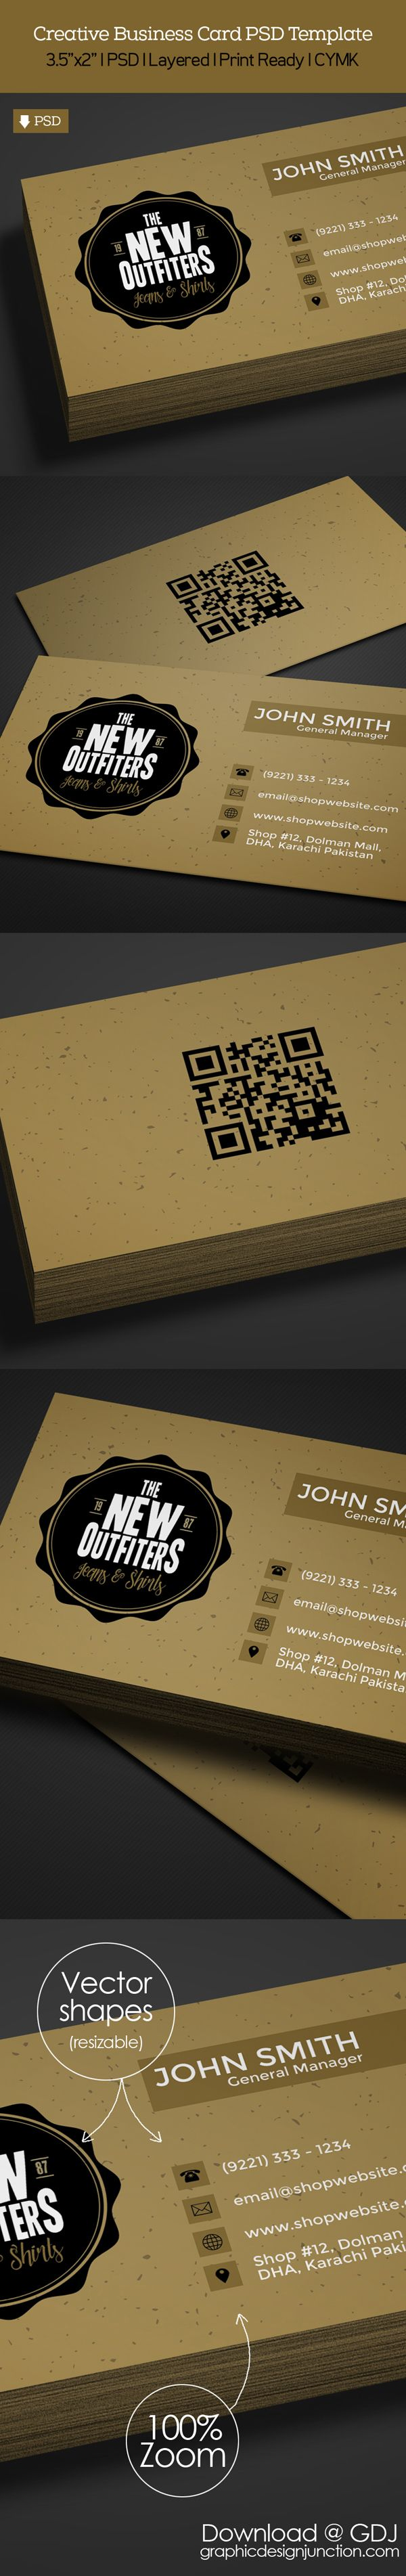 Freebie vintage business card psd template business card design freebie vintage business card psd template reheart Image collections